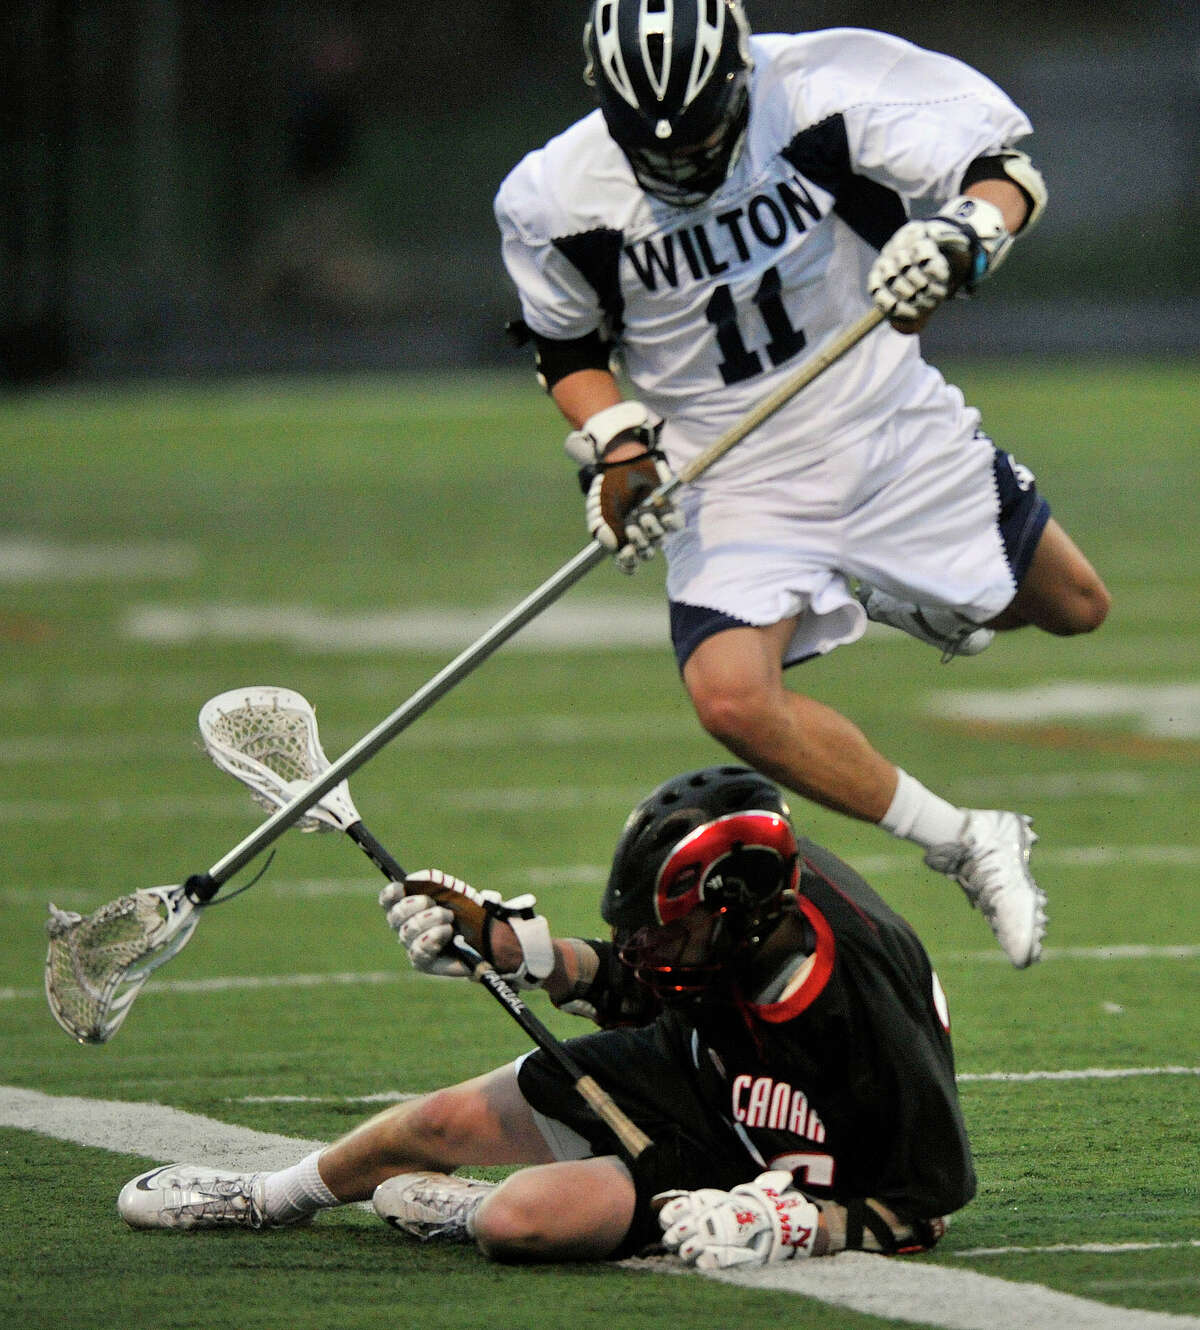 Wilton's Michael Brown leaps over New Canaan's Peter Swindell during their lacrosse game at Wilton High School in Wilton, Conn., on Tuesday, April 15, 2014.